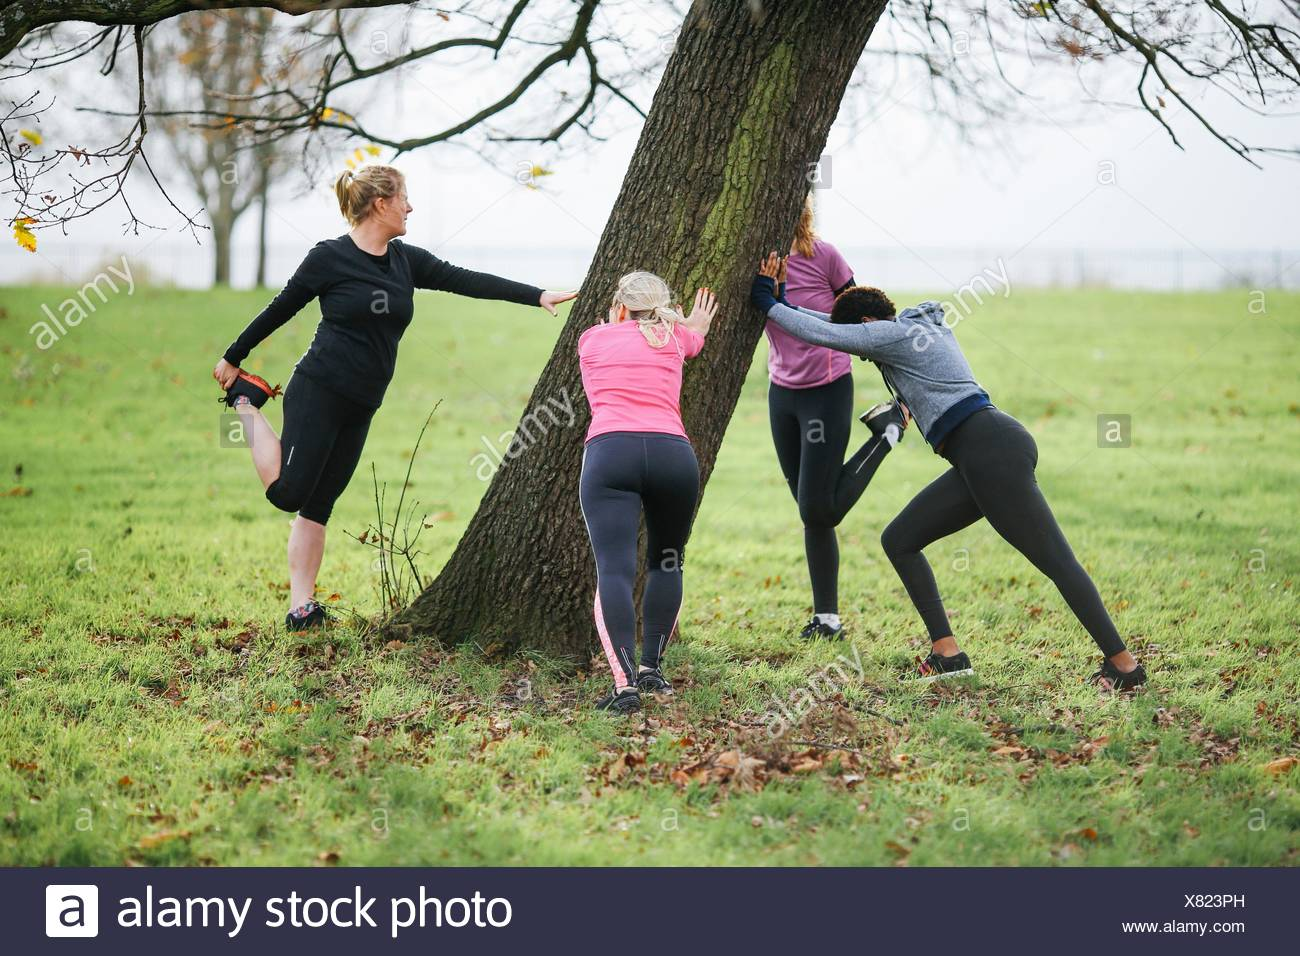 Women and teenager doing warm up exercises around park tree - Stock Image